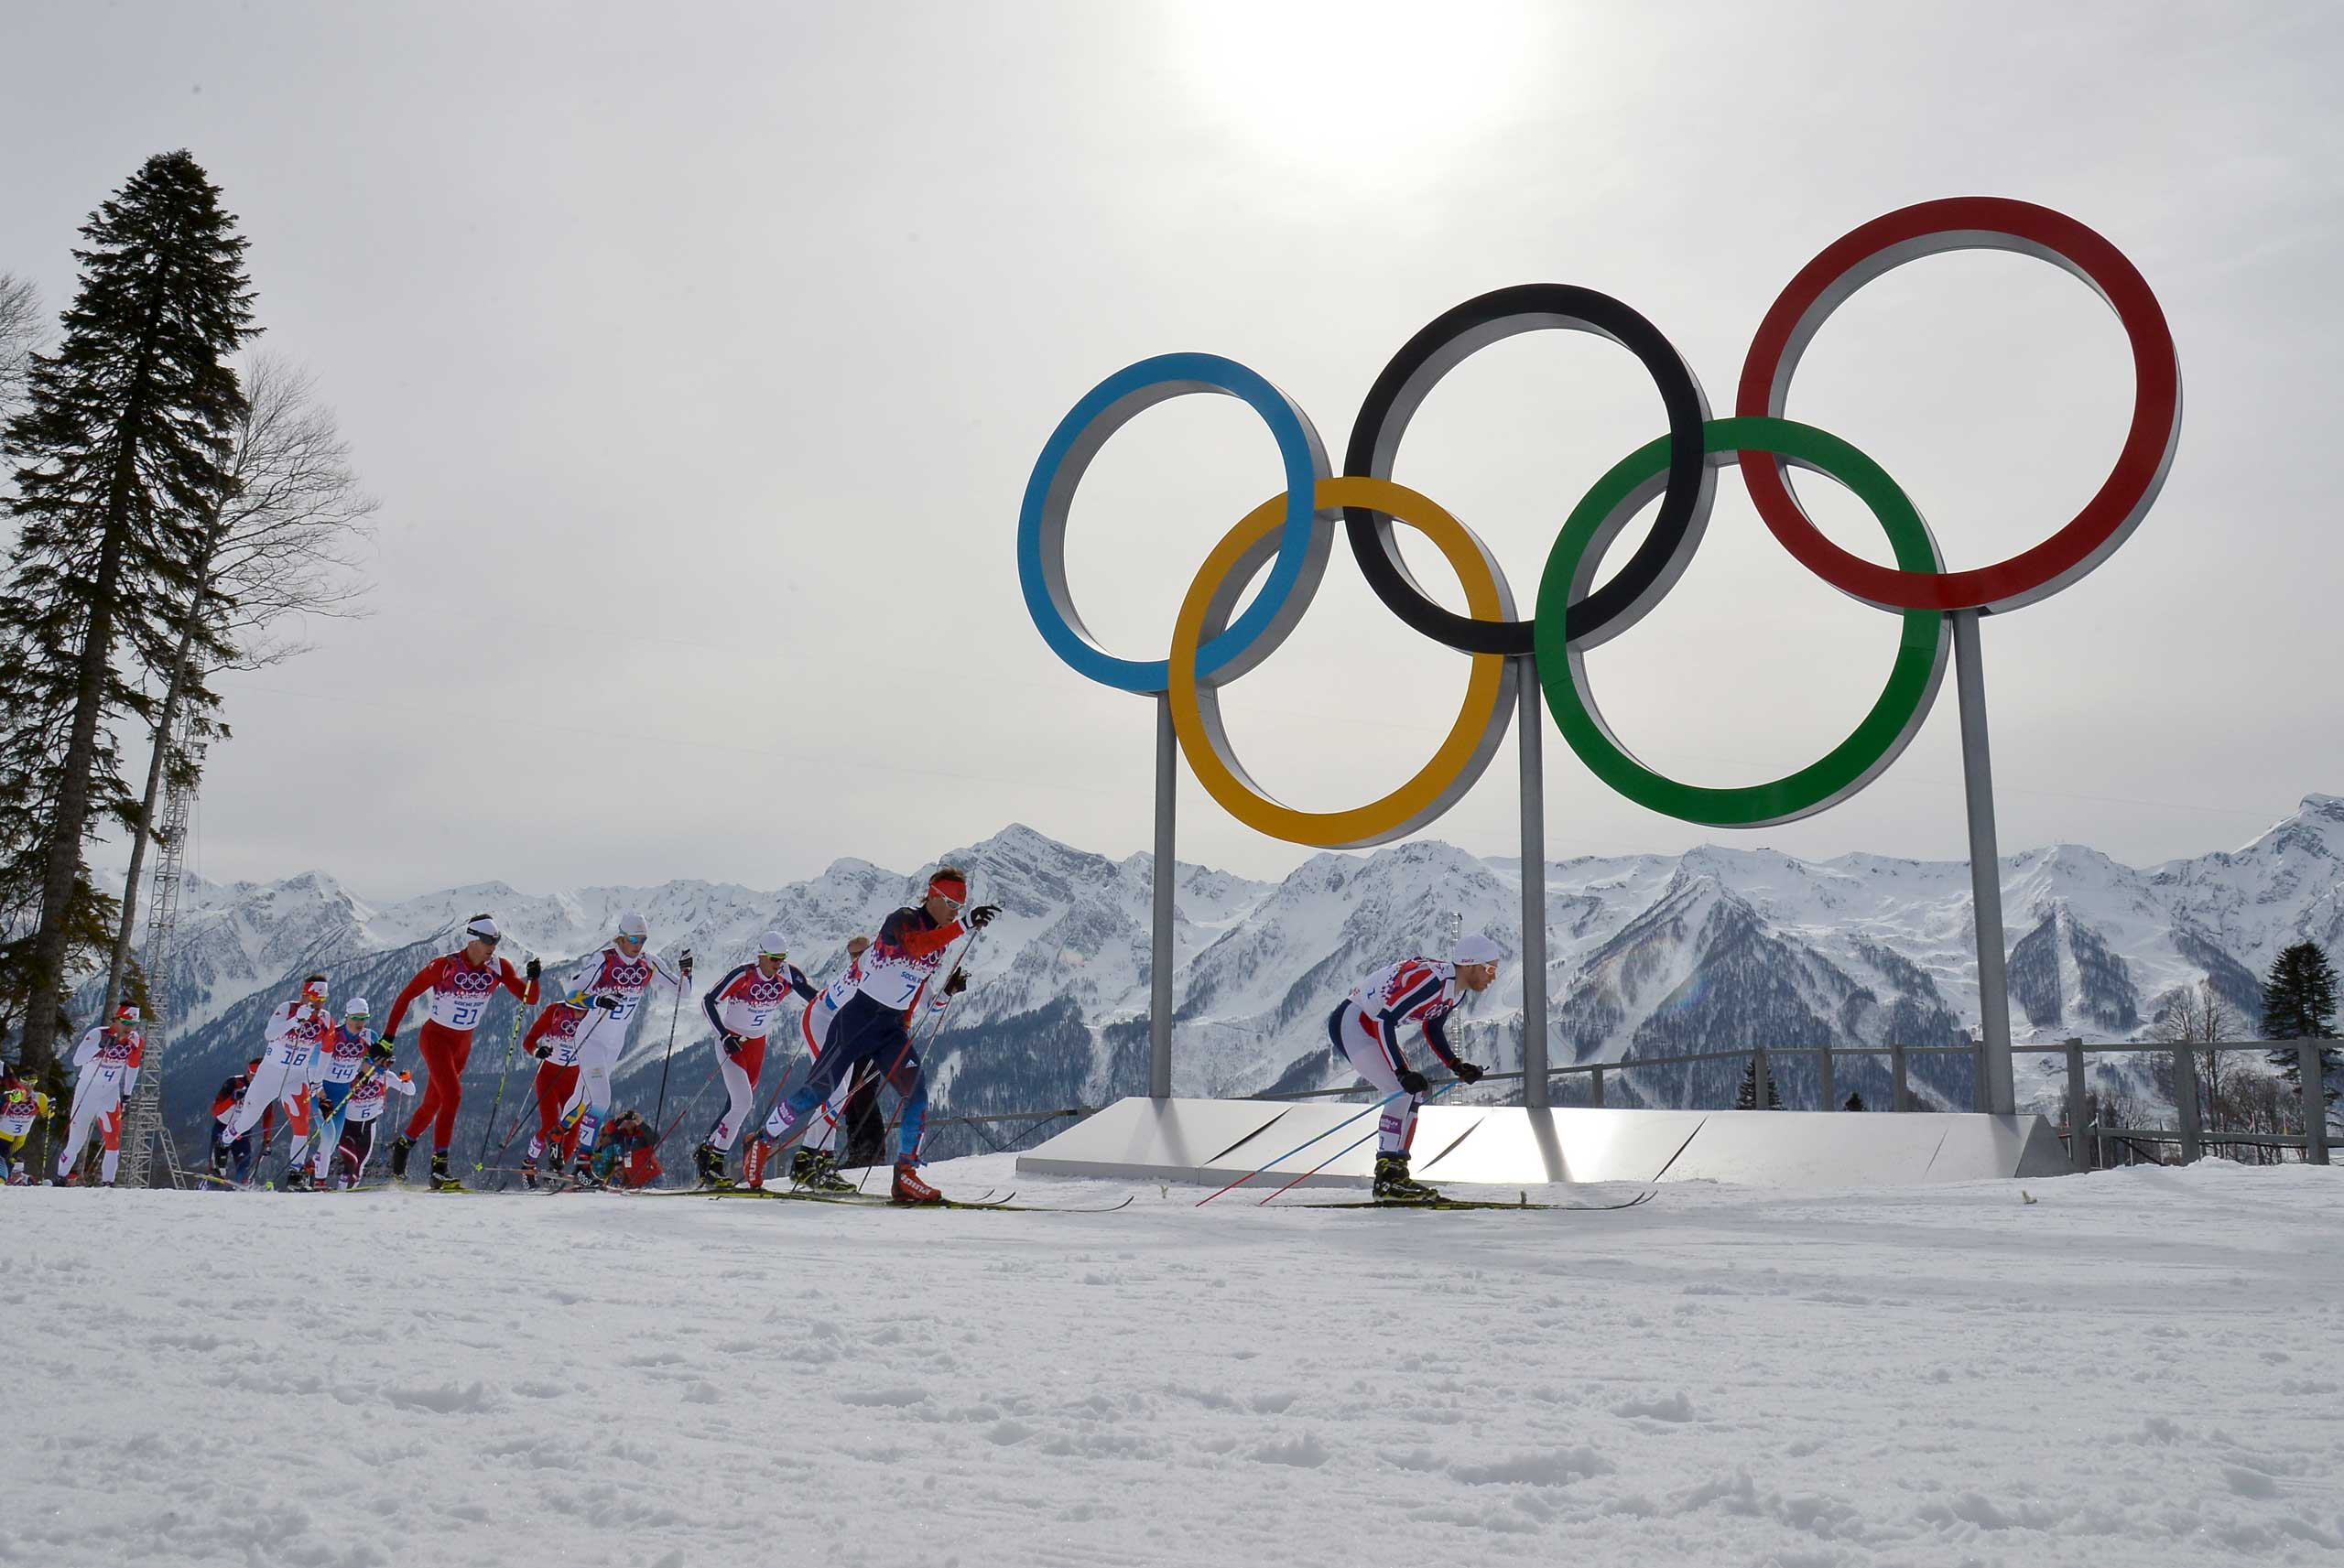 Skiers compete past the Olympic Rings in the Men's Cross-Country Skiing 15km + 15km Skiathlon at the Laura Cross-Country Ski and Biathlon Center during the Sochi Winter Olympics in Russia on Feb. 9, 2014.